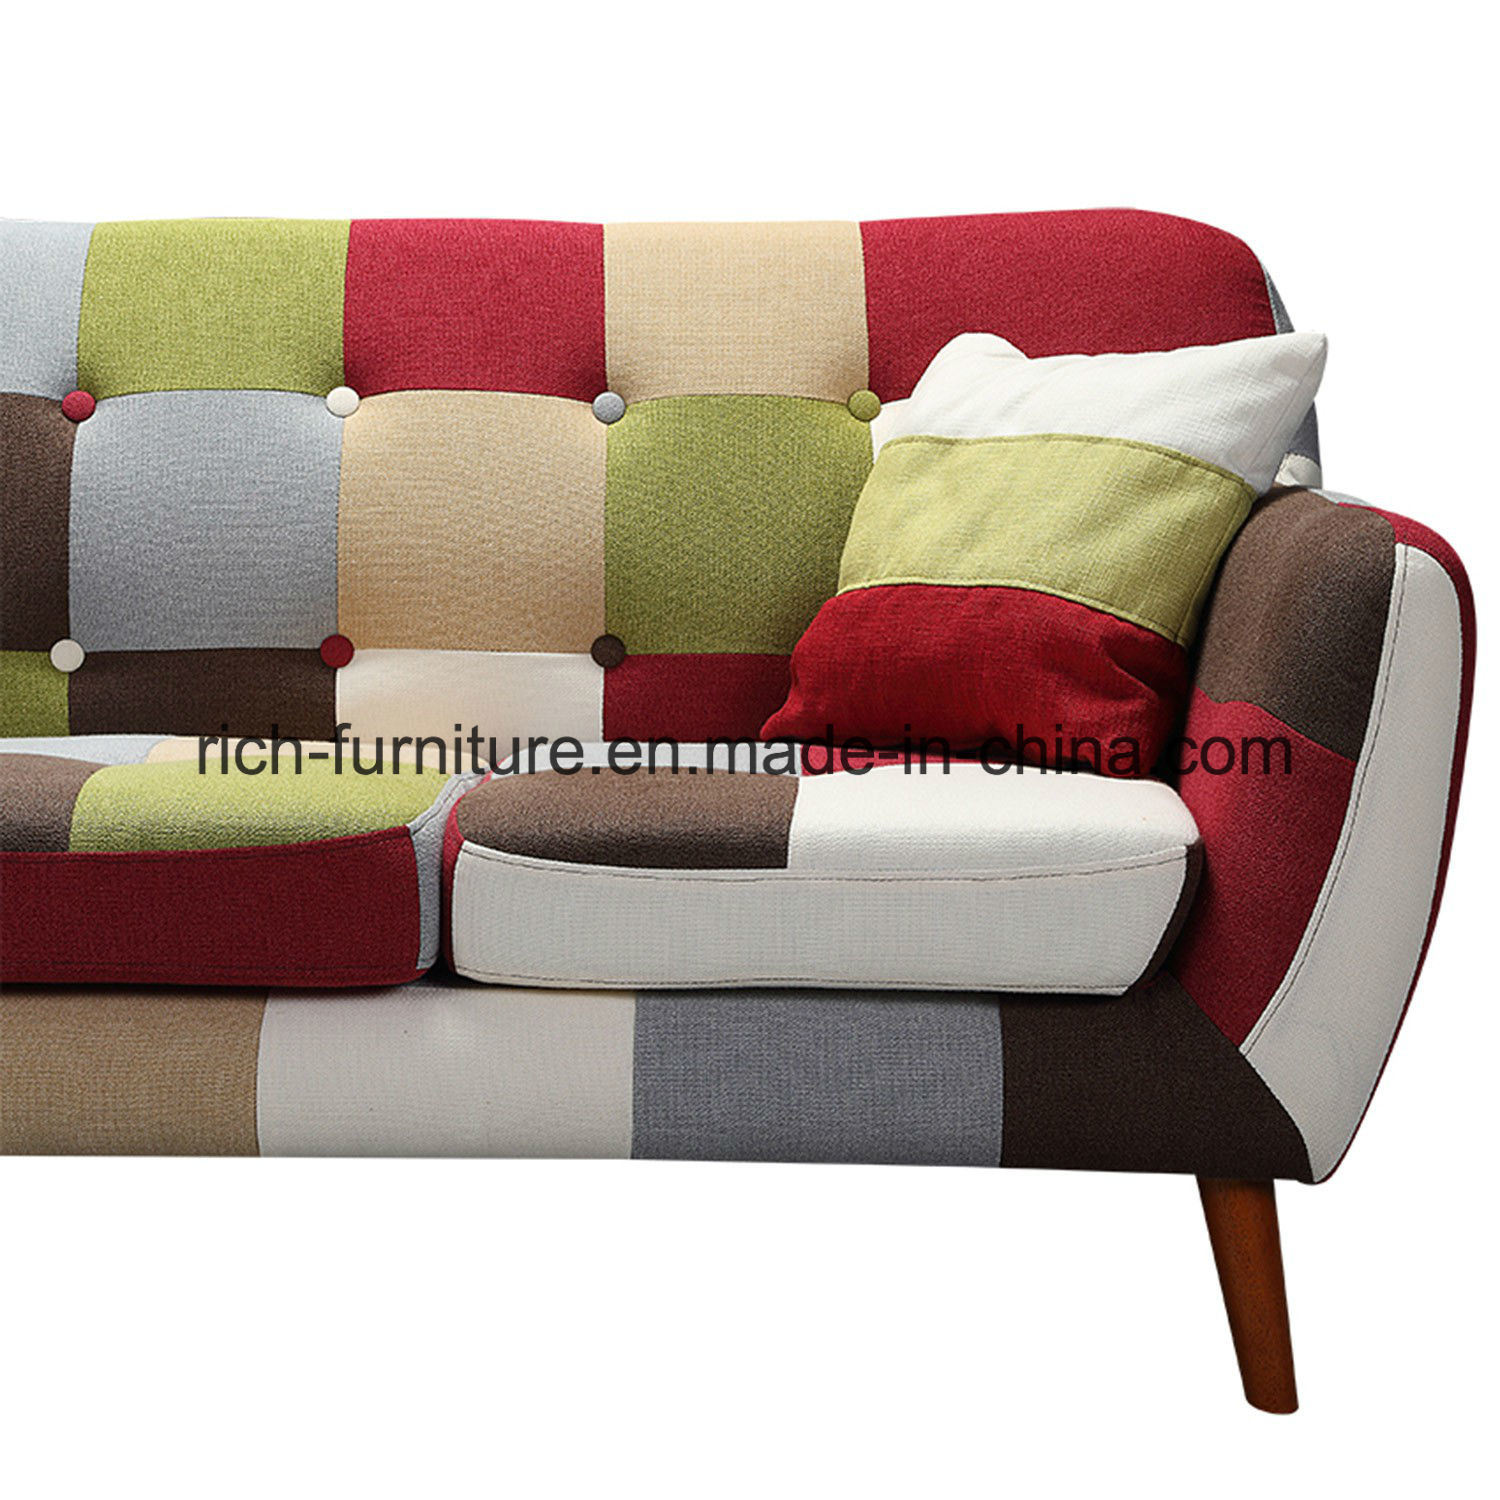 High Quality Italian Design Living Room Hotel Lobby Patchwork Modern Fabric Sofa